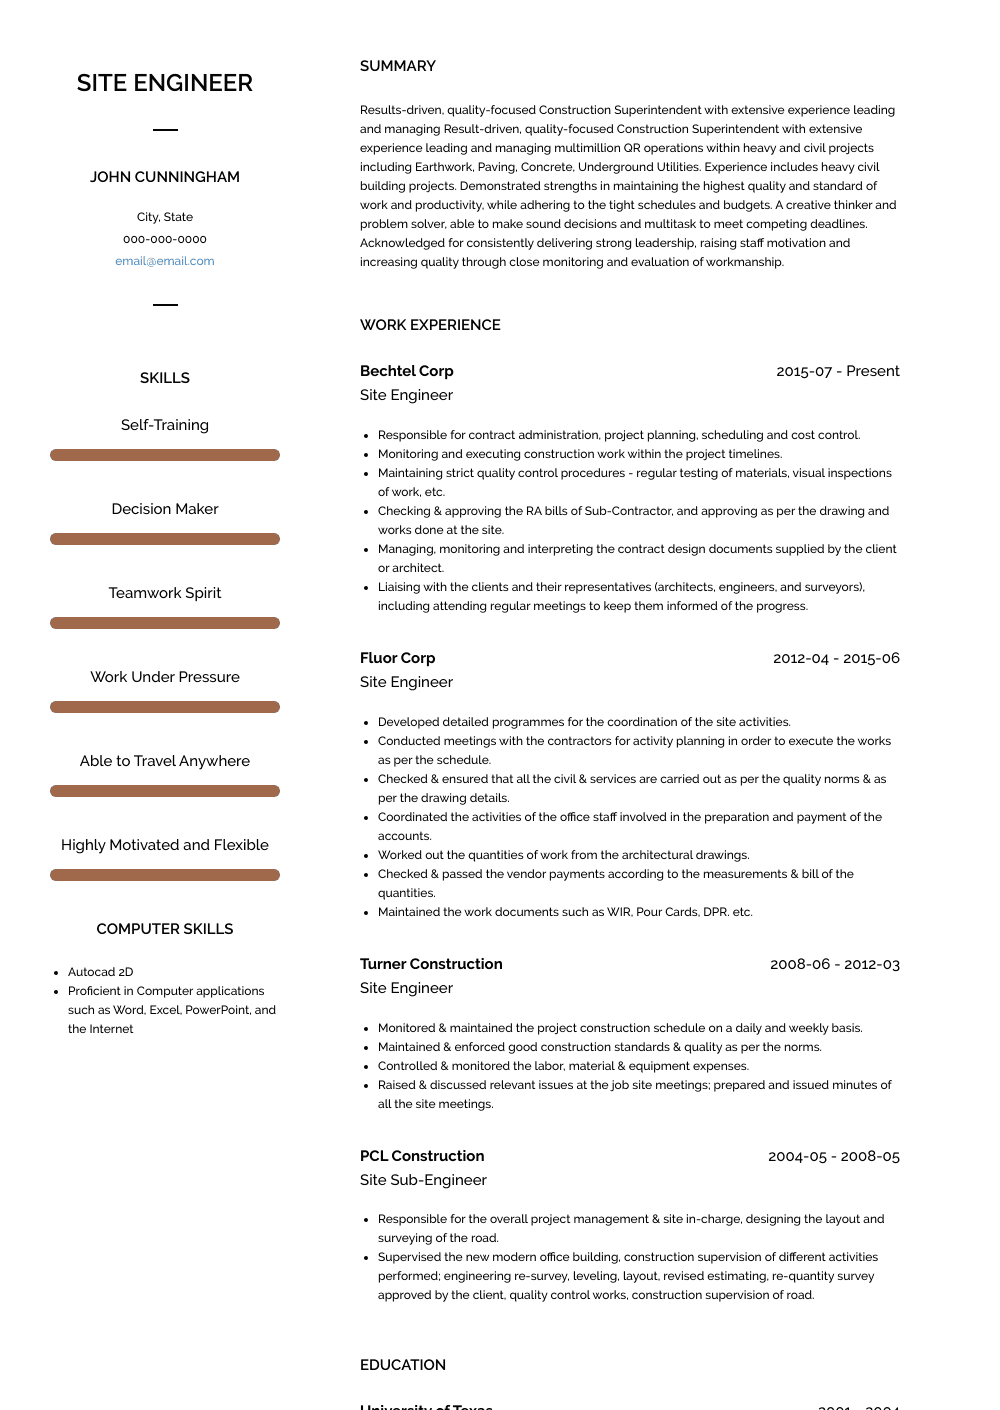 Best Site Engineer Resume Sample and Template for 2020 in